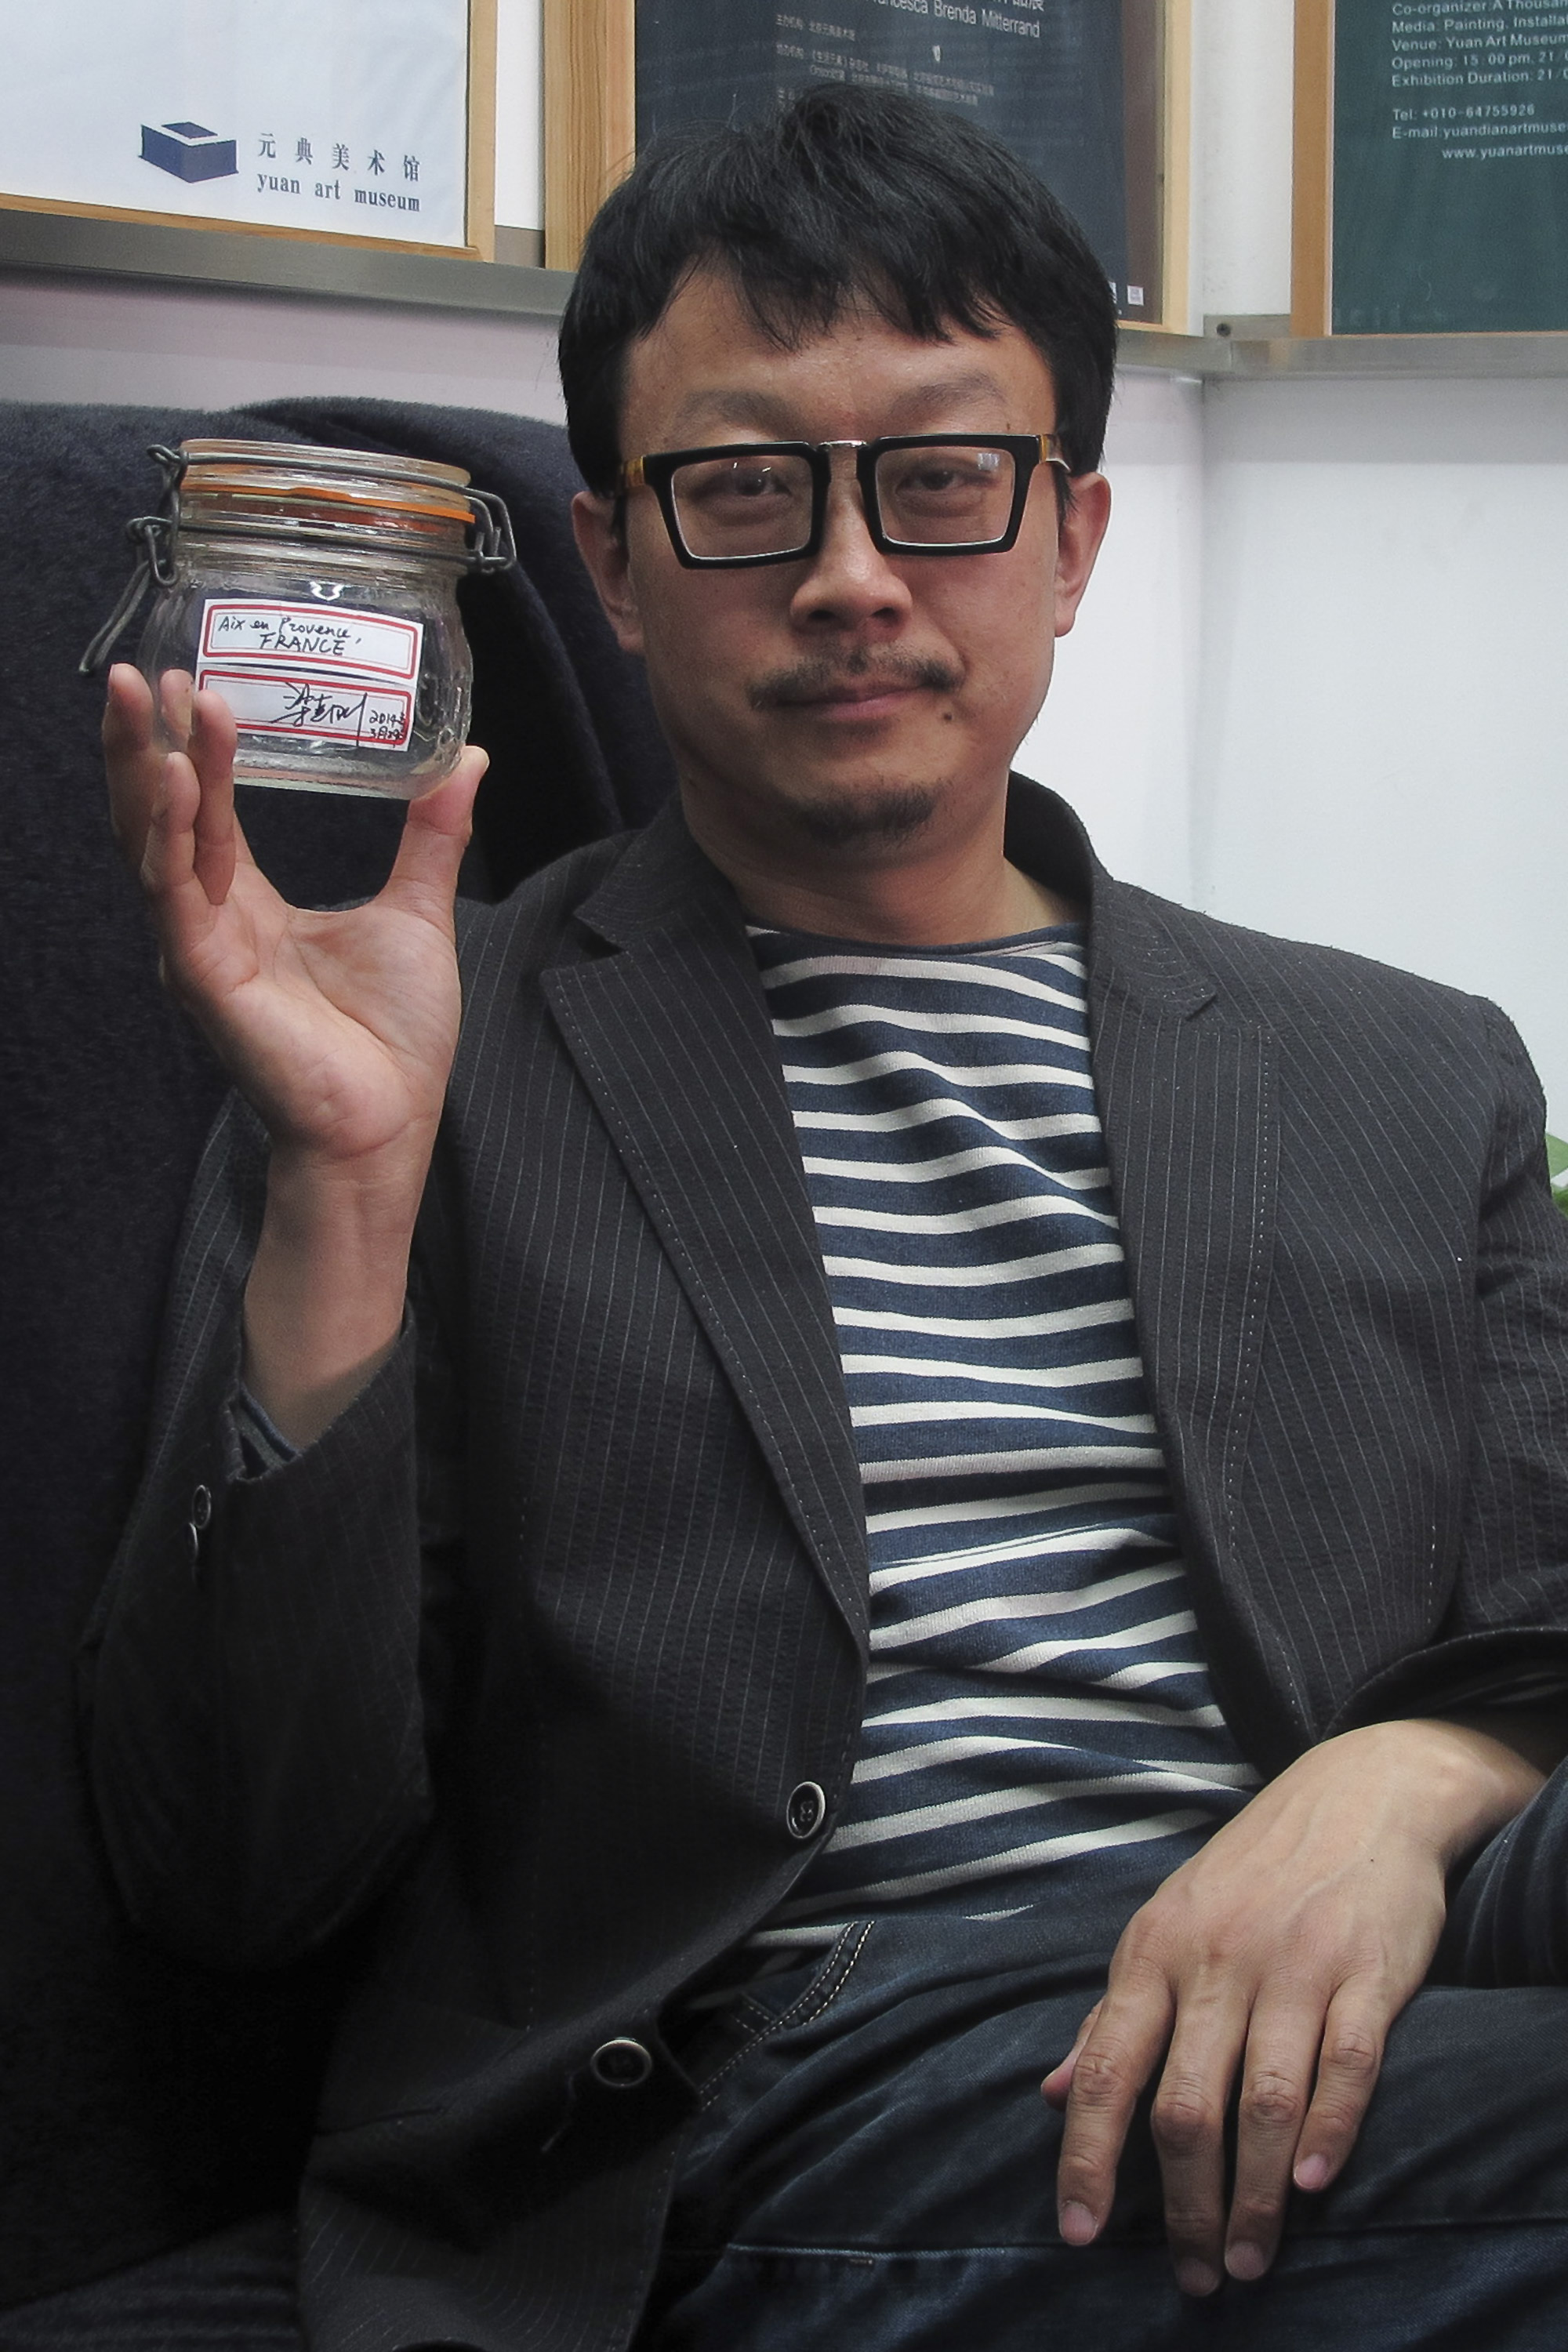 Beijing artist Liang Kegang is pictured with the jar of fresh air collected in Provence, France, in an art gallery in Beijing, China.